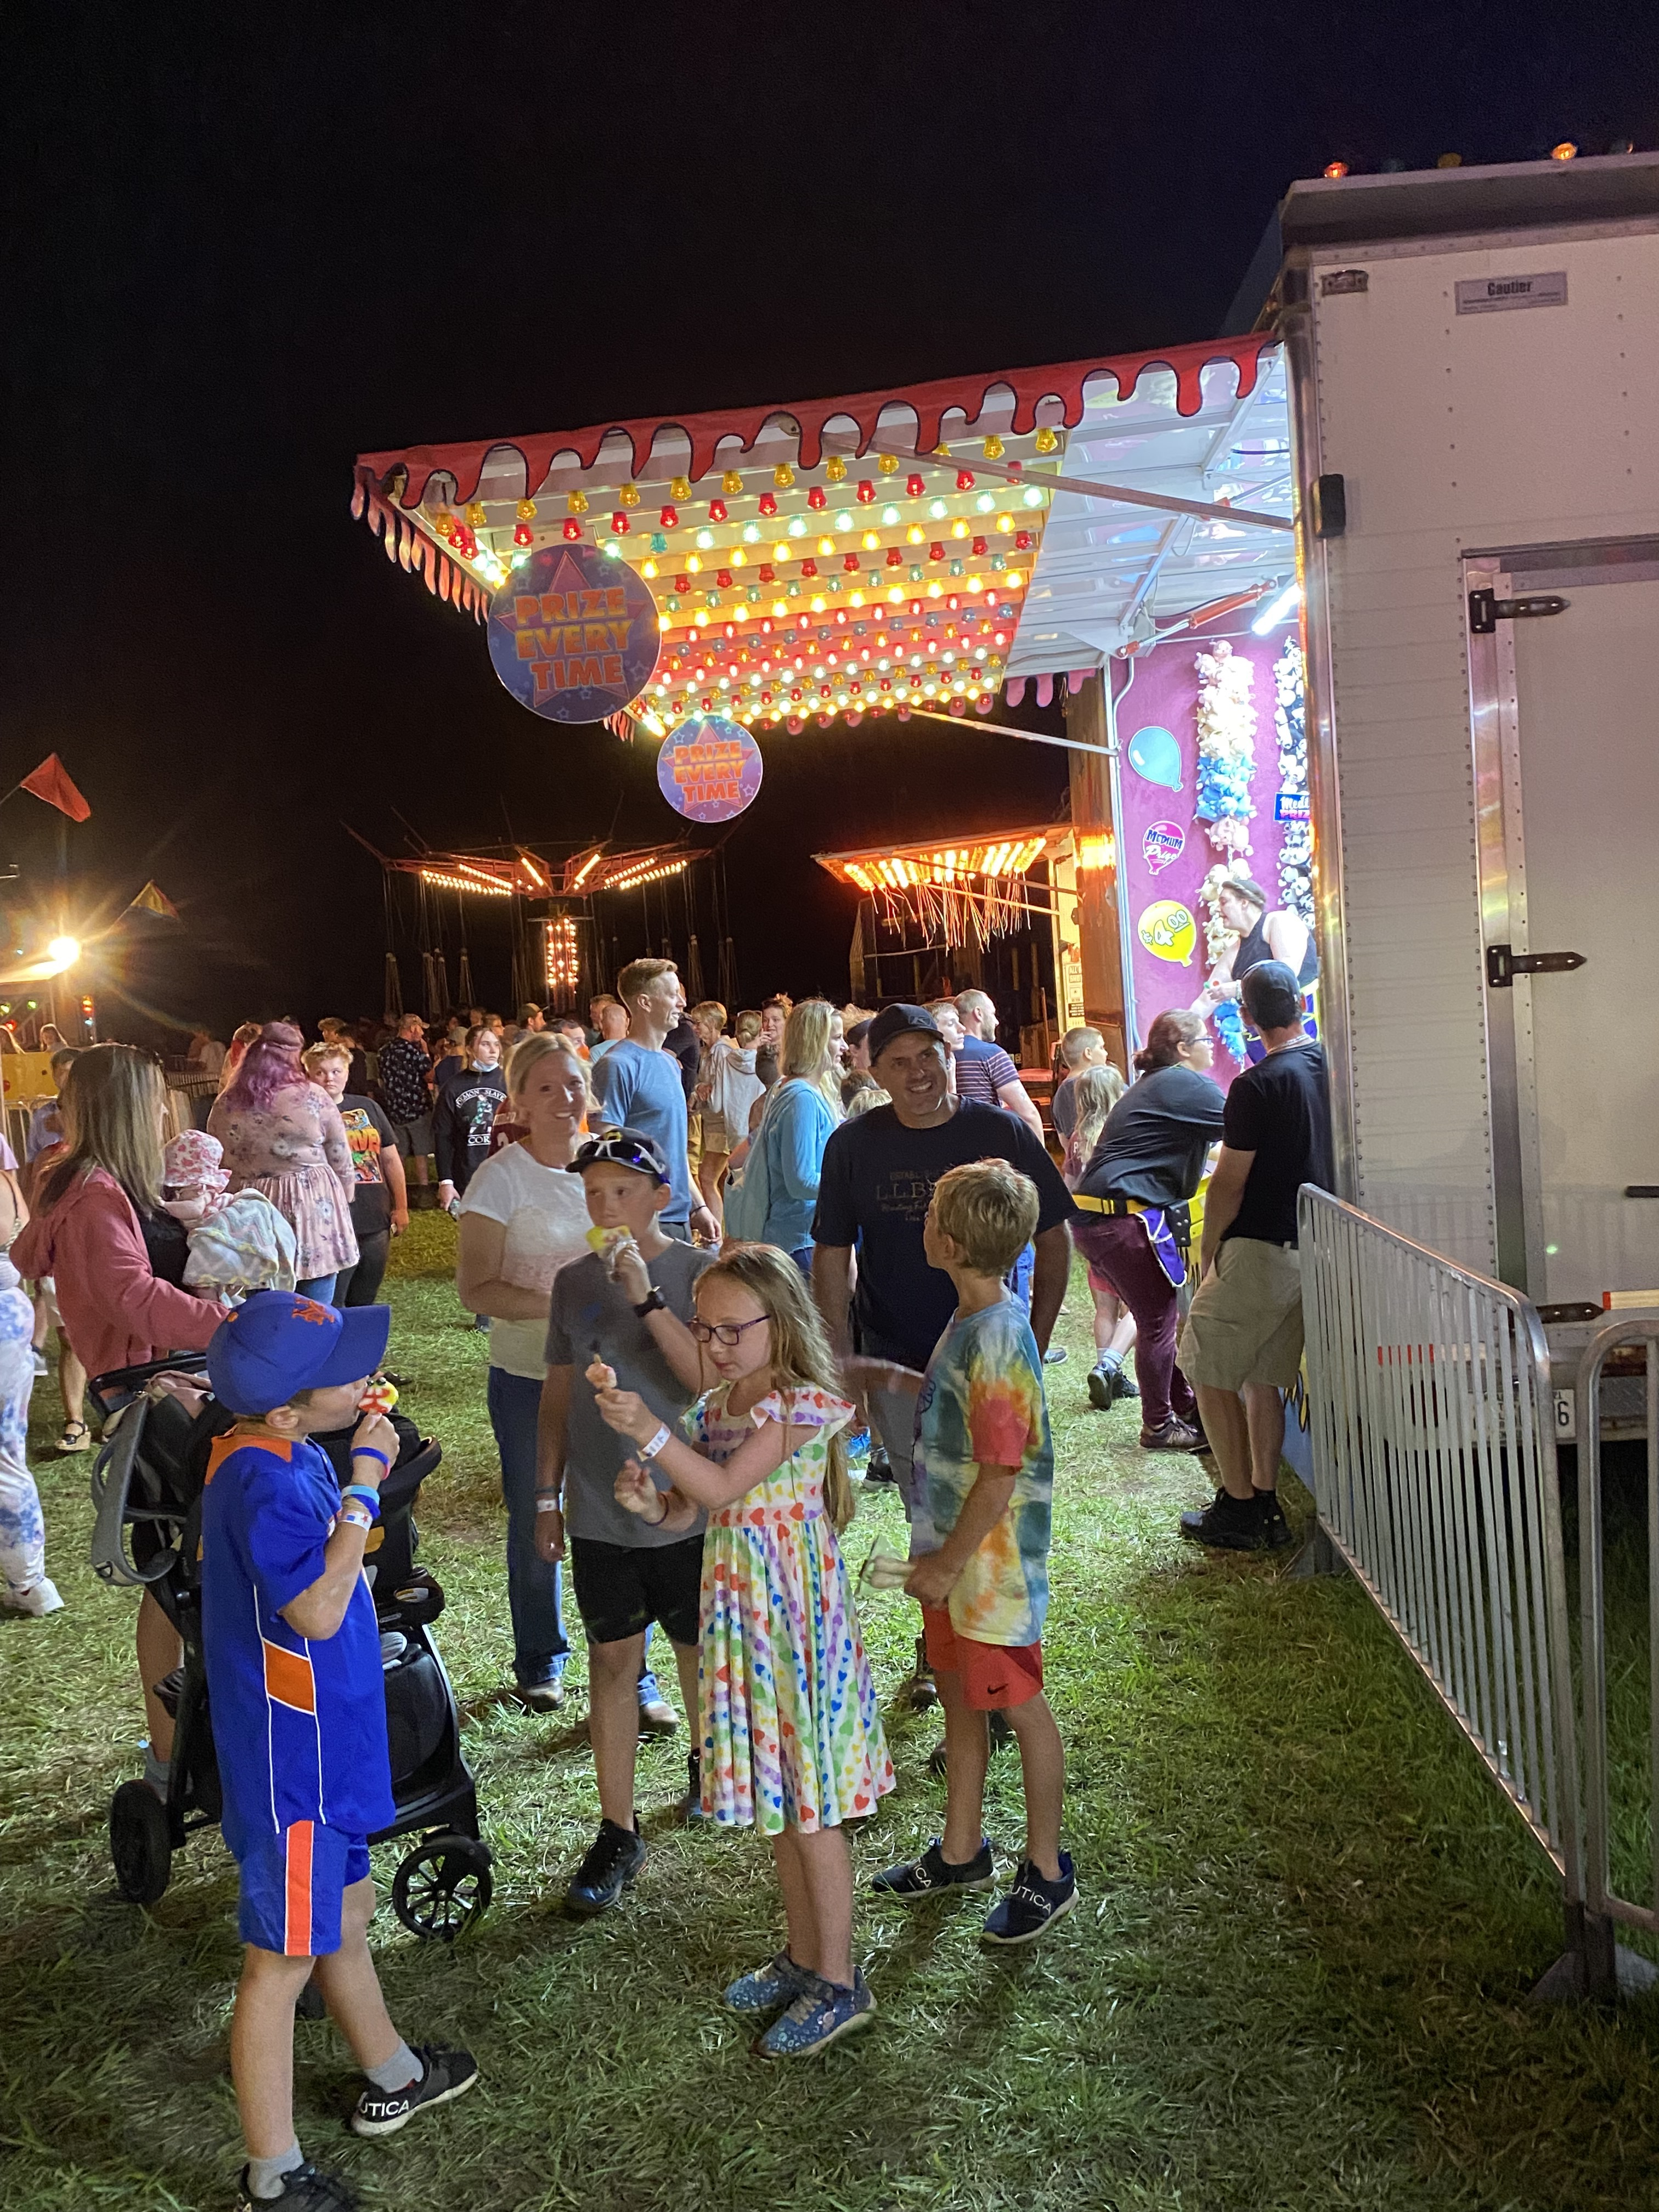 <strong>The carnival was scheduled to end on July 17 but was extended by a week because of heavy rains that week. On Saturday, July 24, the fairground was packed with people.<em>Photoby Cynthia Hochswender</em></strong>